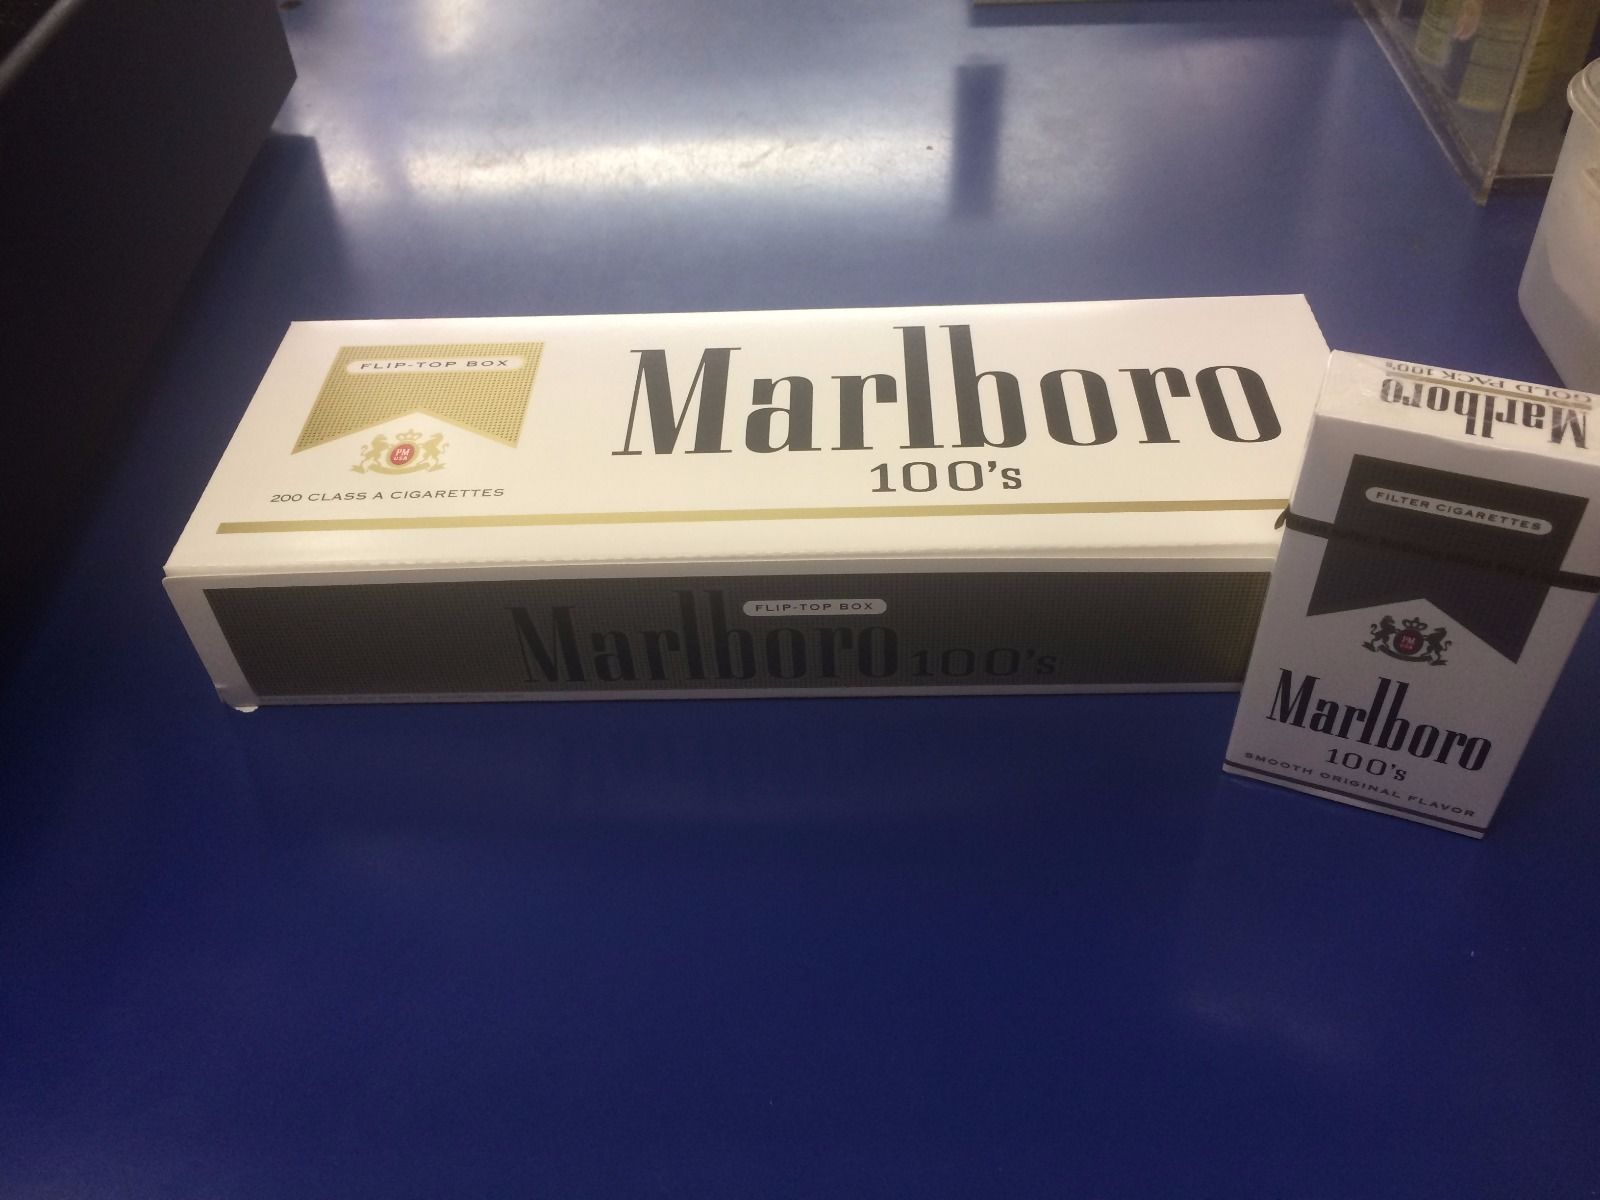 Find cheap cigarettes Marlboro